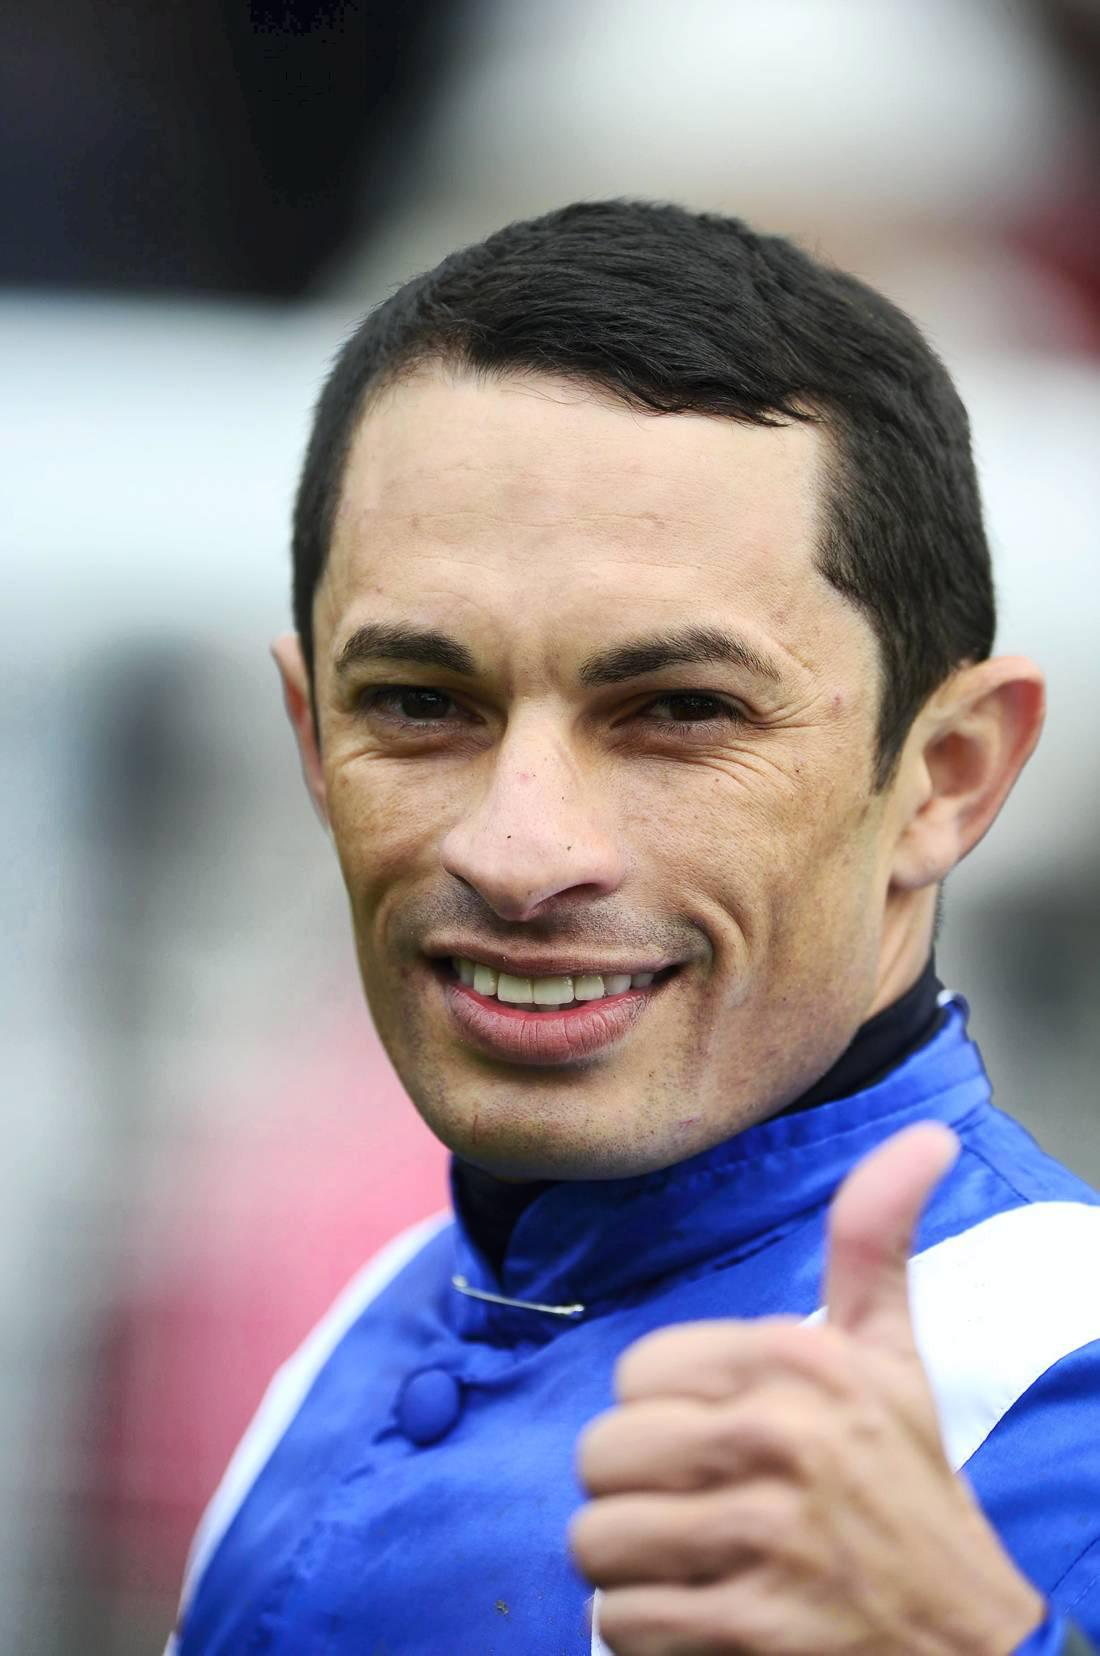 UAE: De Sousa on a hot streak